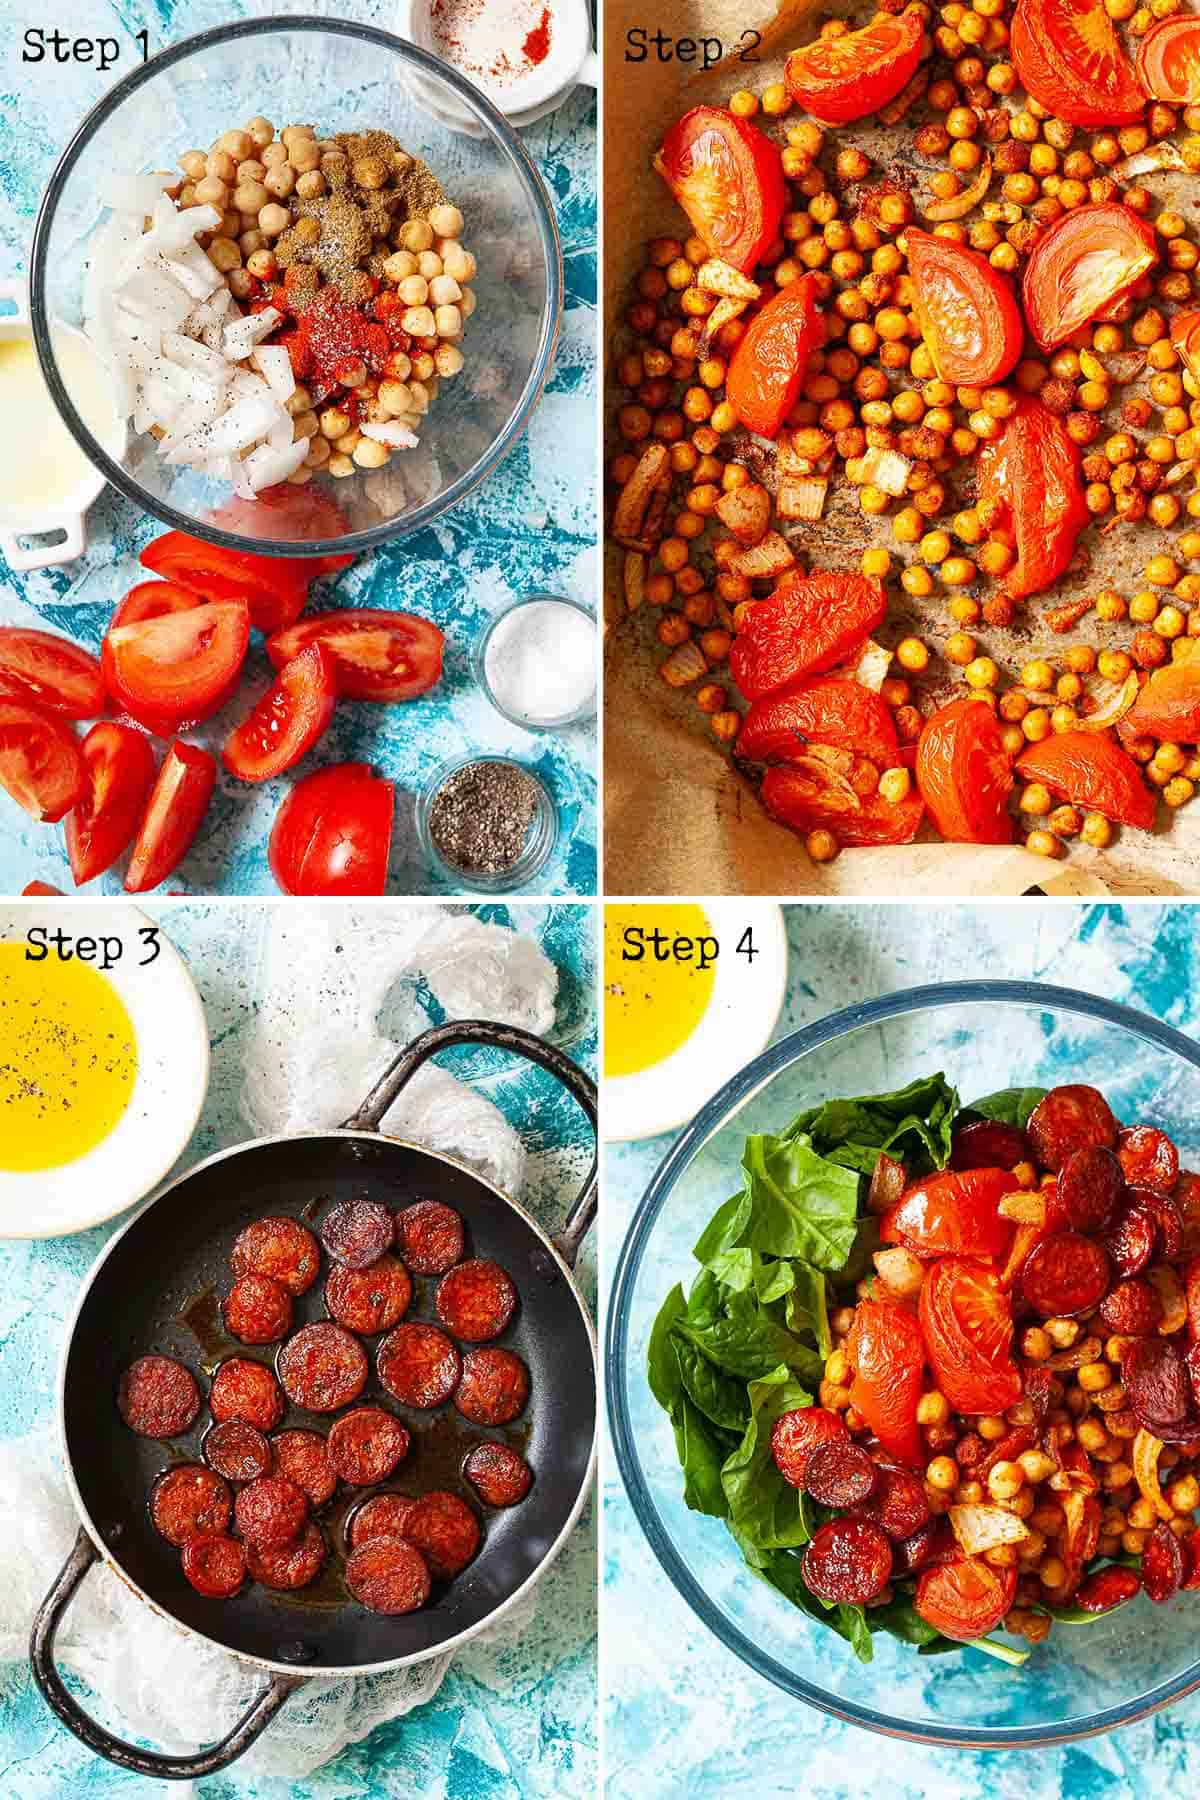 Collage of images showing a salad being made